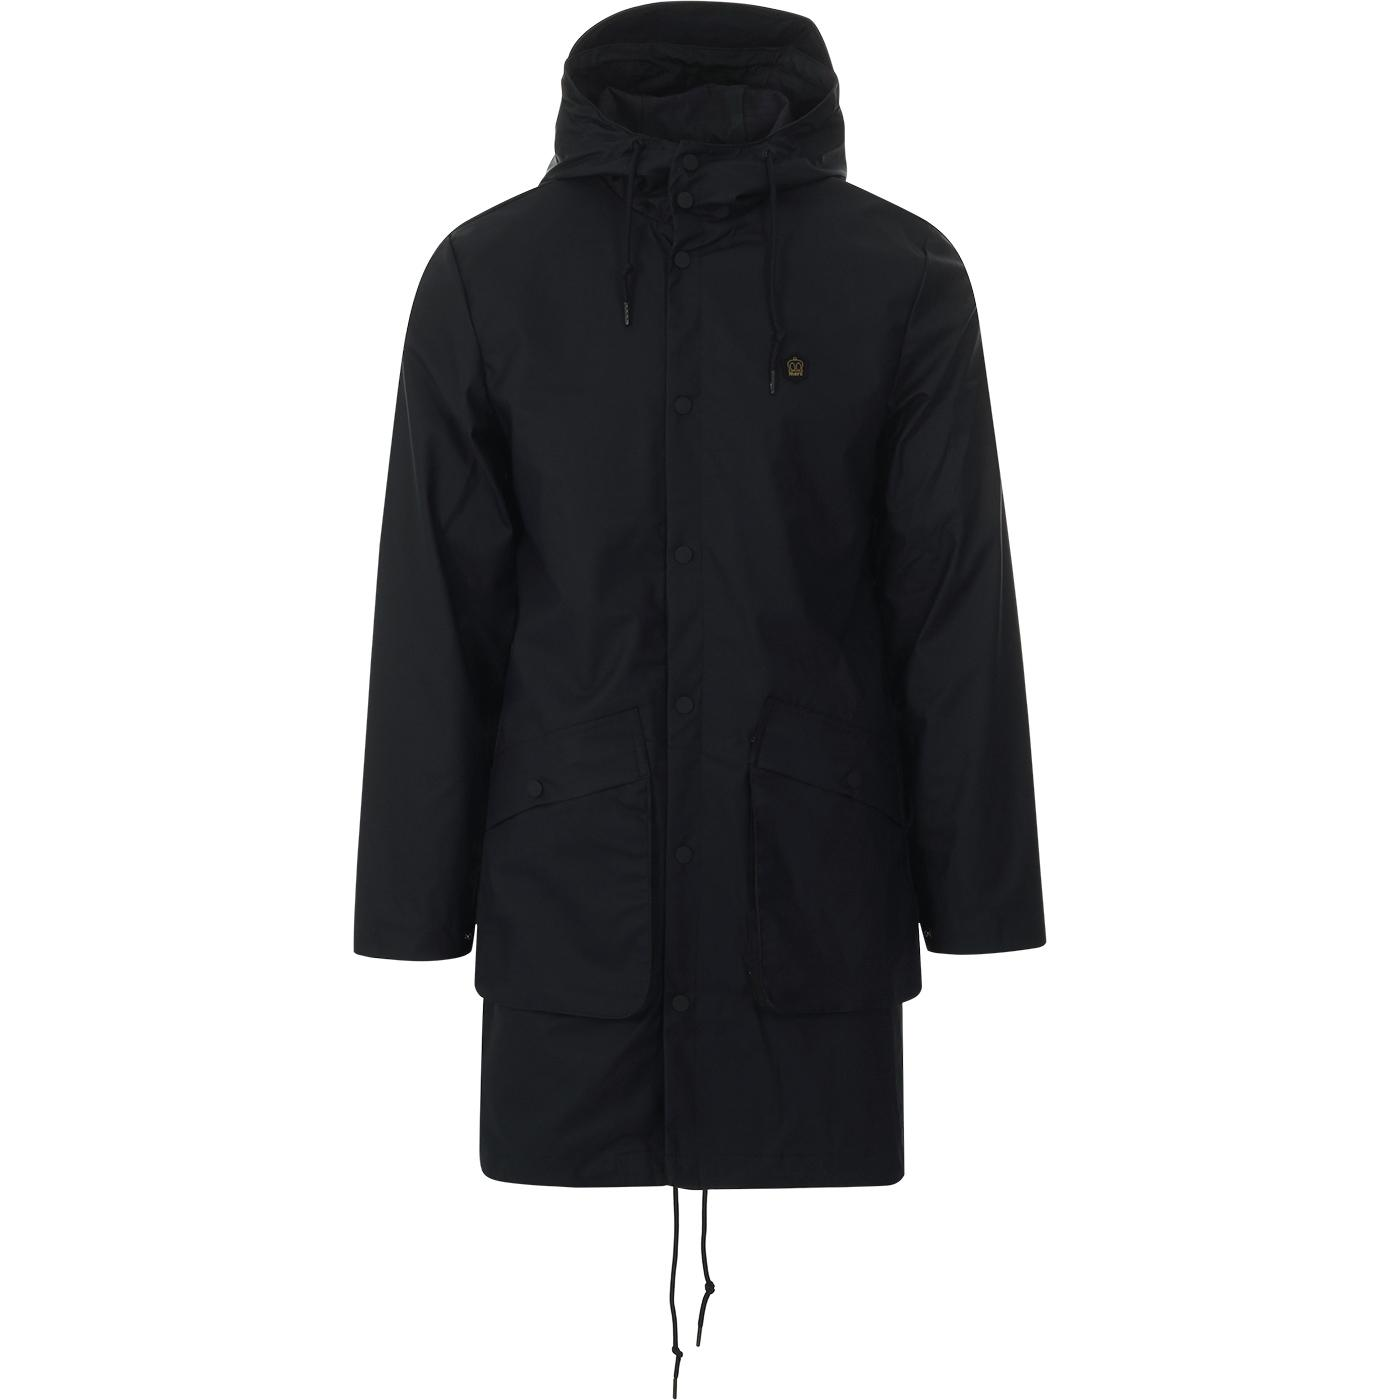 Fitzroy MERC Retro Mod Fishtail Parka Jacket NAVY